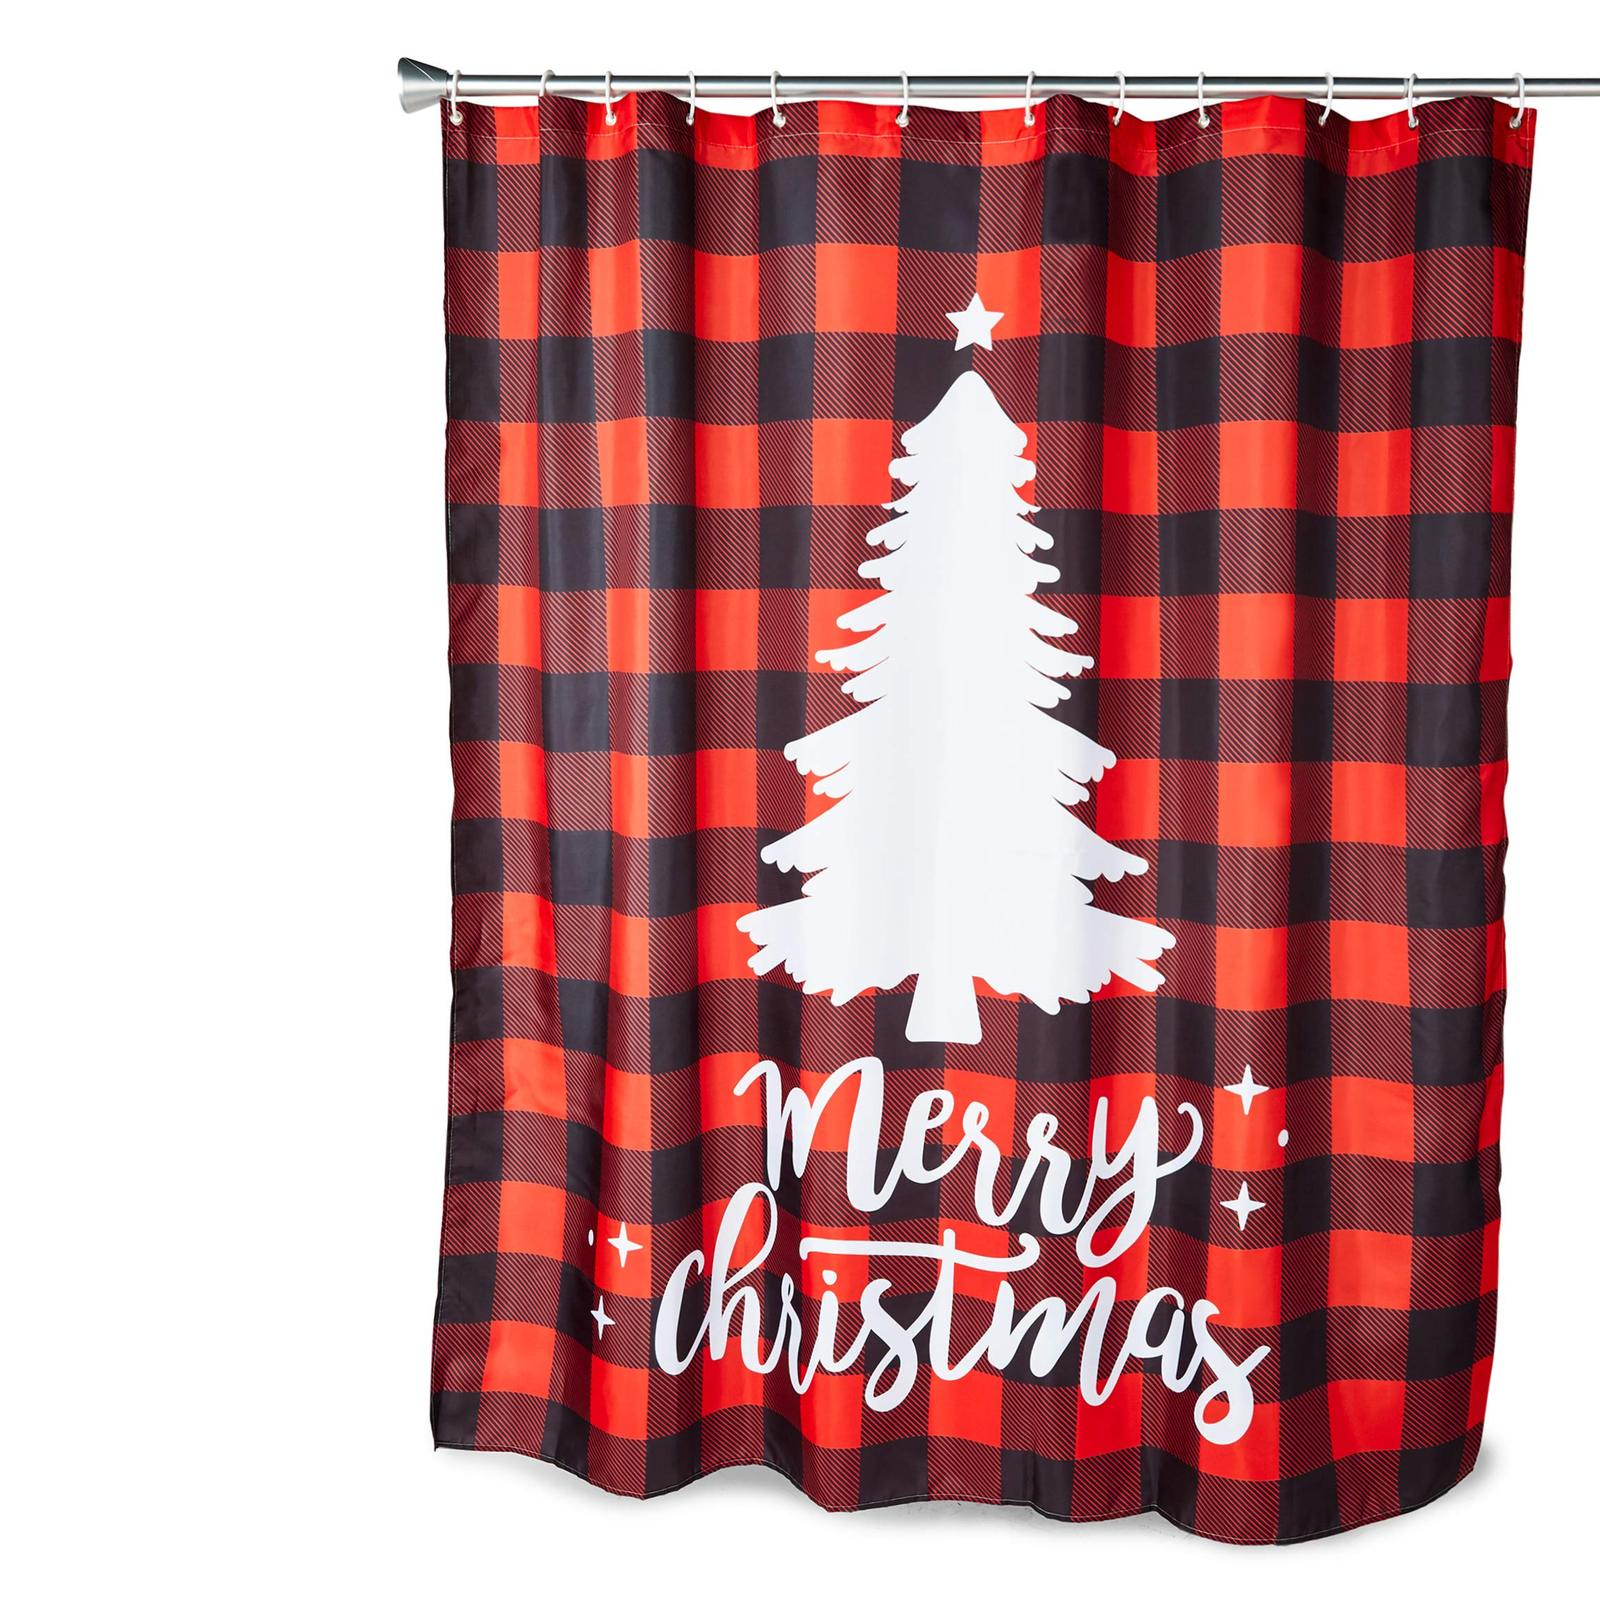 Primary image for Farmlyn Creek Buffalo Plaid Shower Curtain Set with 12 Hooks, Merry Christmas (7